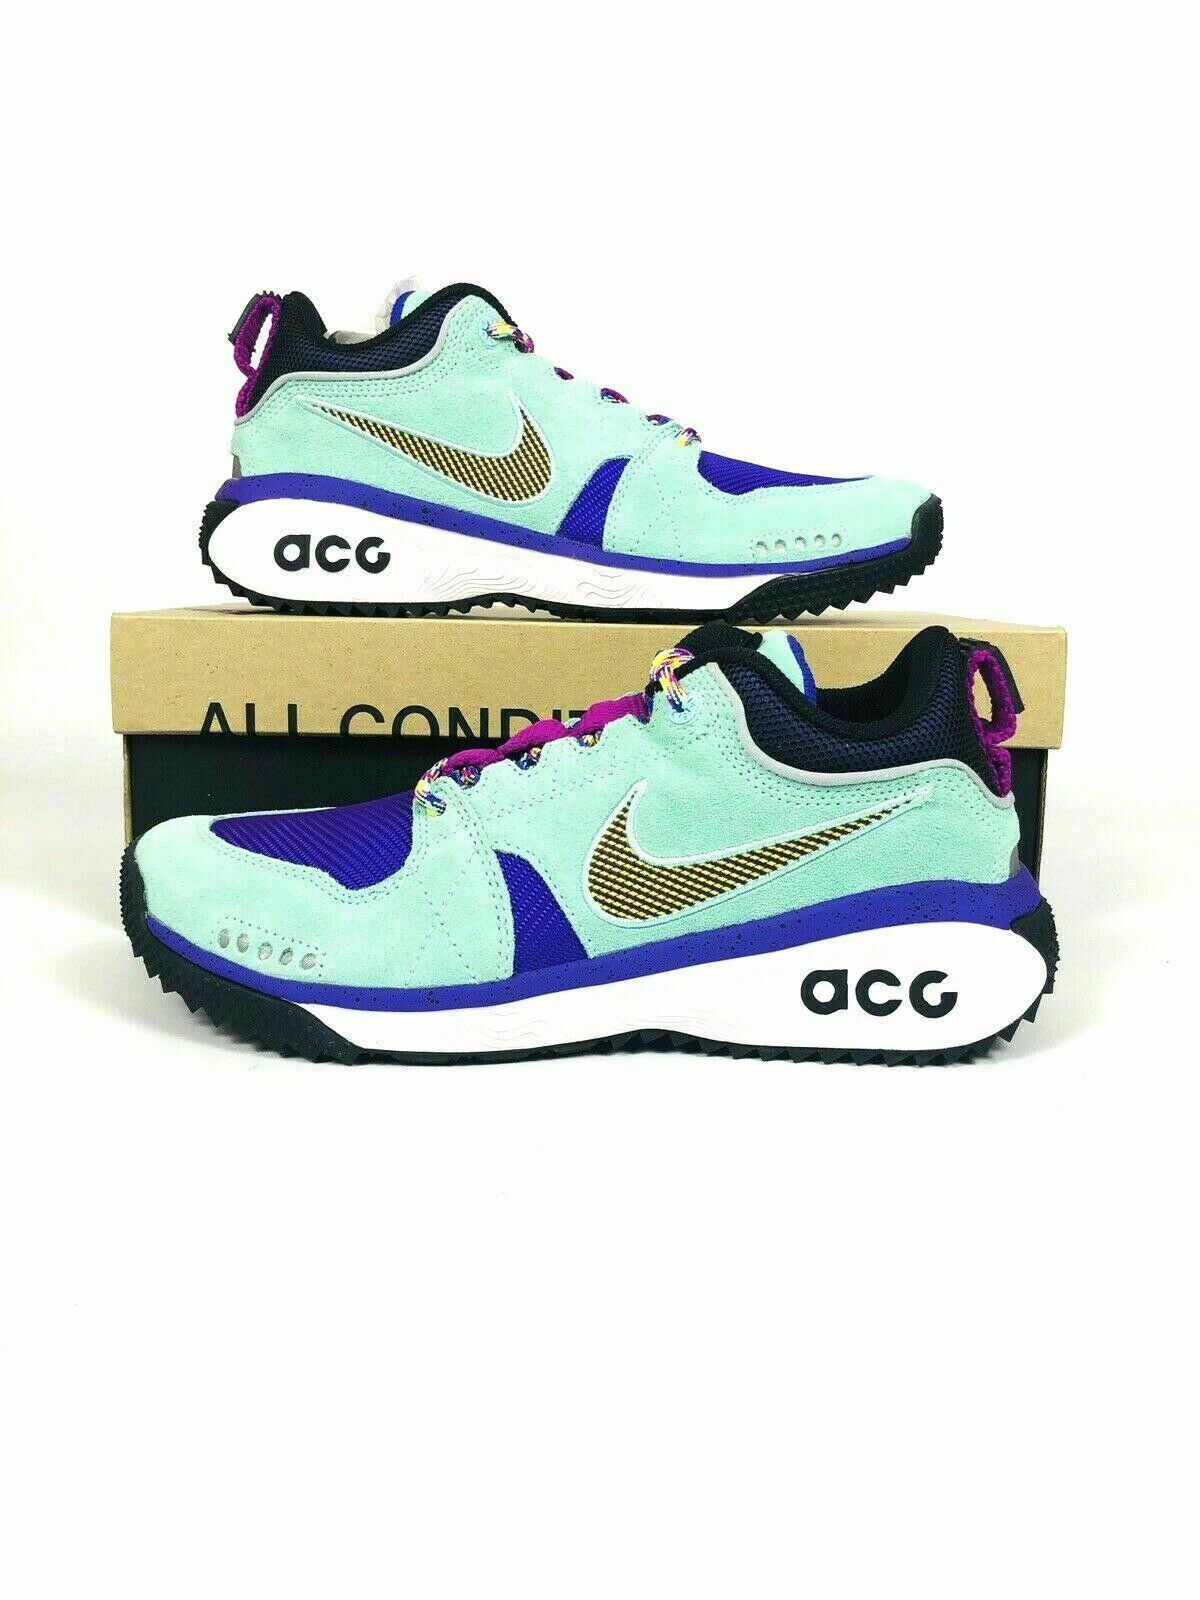 New Nike ACG Dog Mountain Emerald Rise bluee bluee bluee Purple AQ0916 300 2f9e26